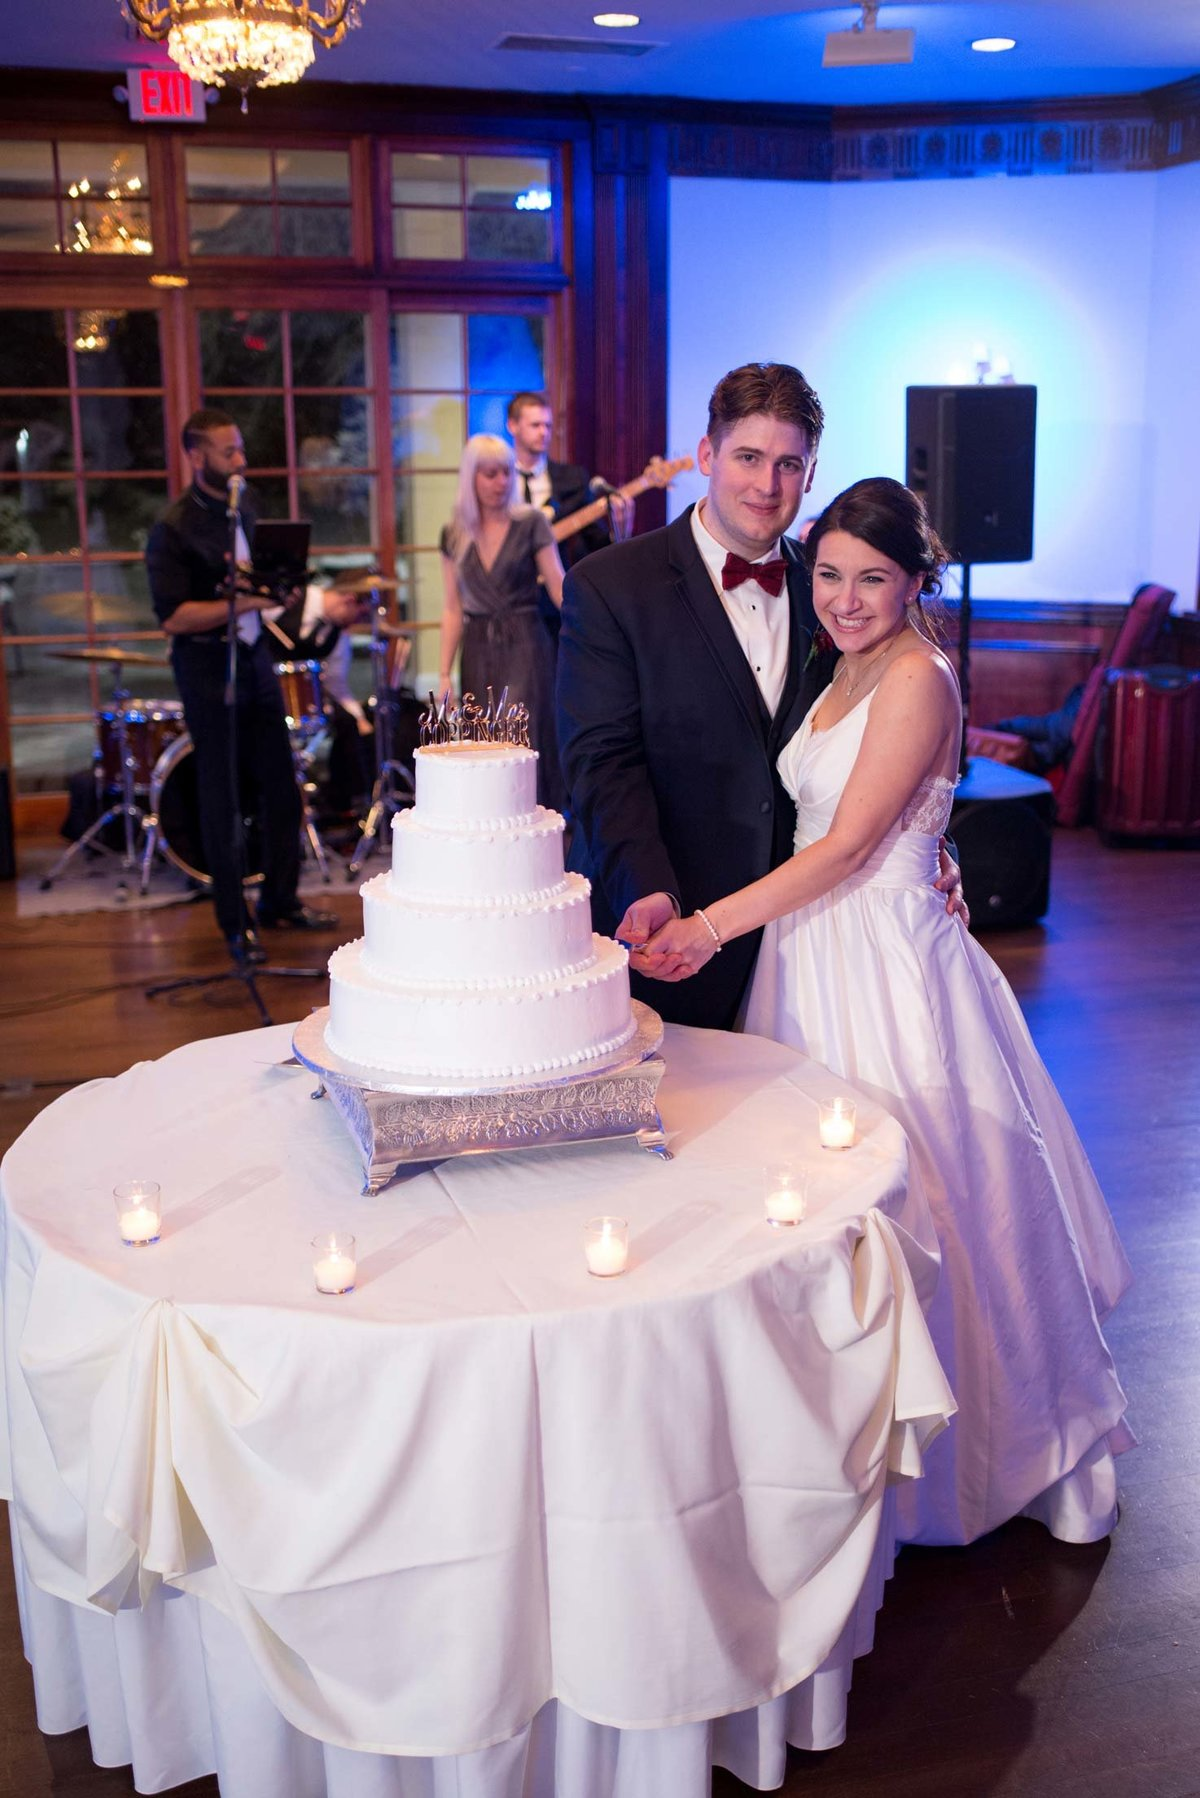 Bride and groom cutting their cake at The Mansion at Oyster Bay